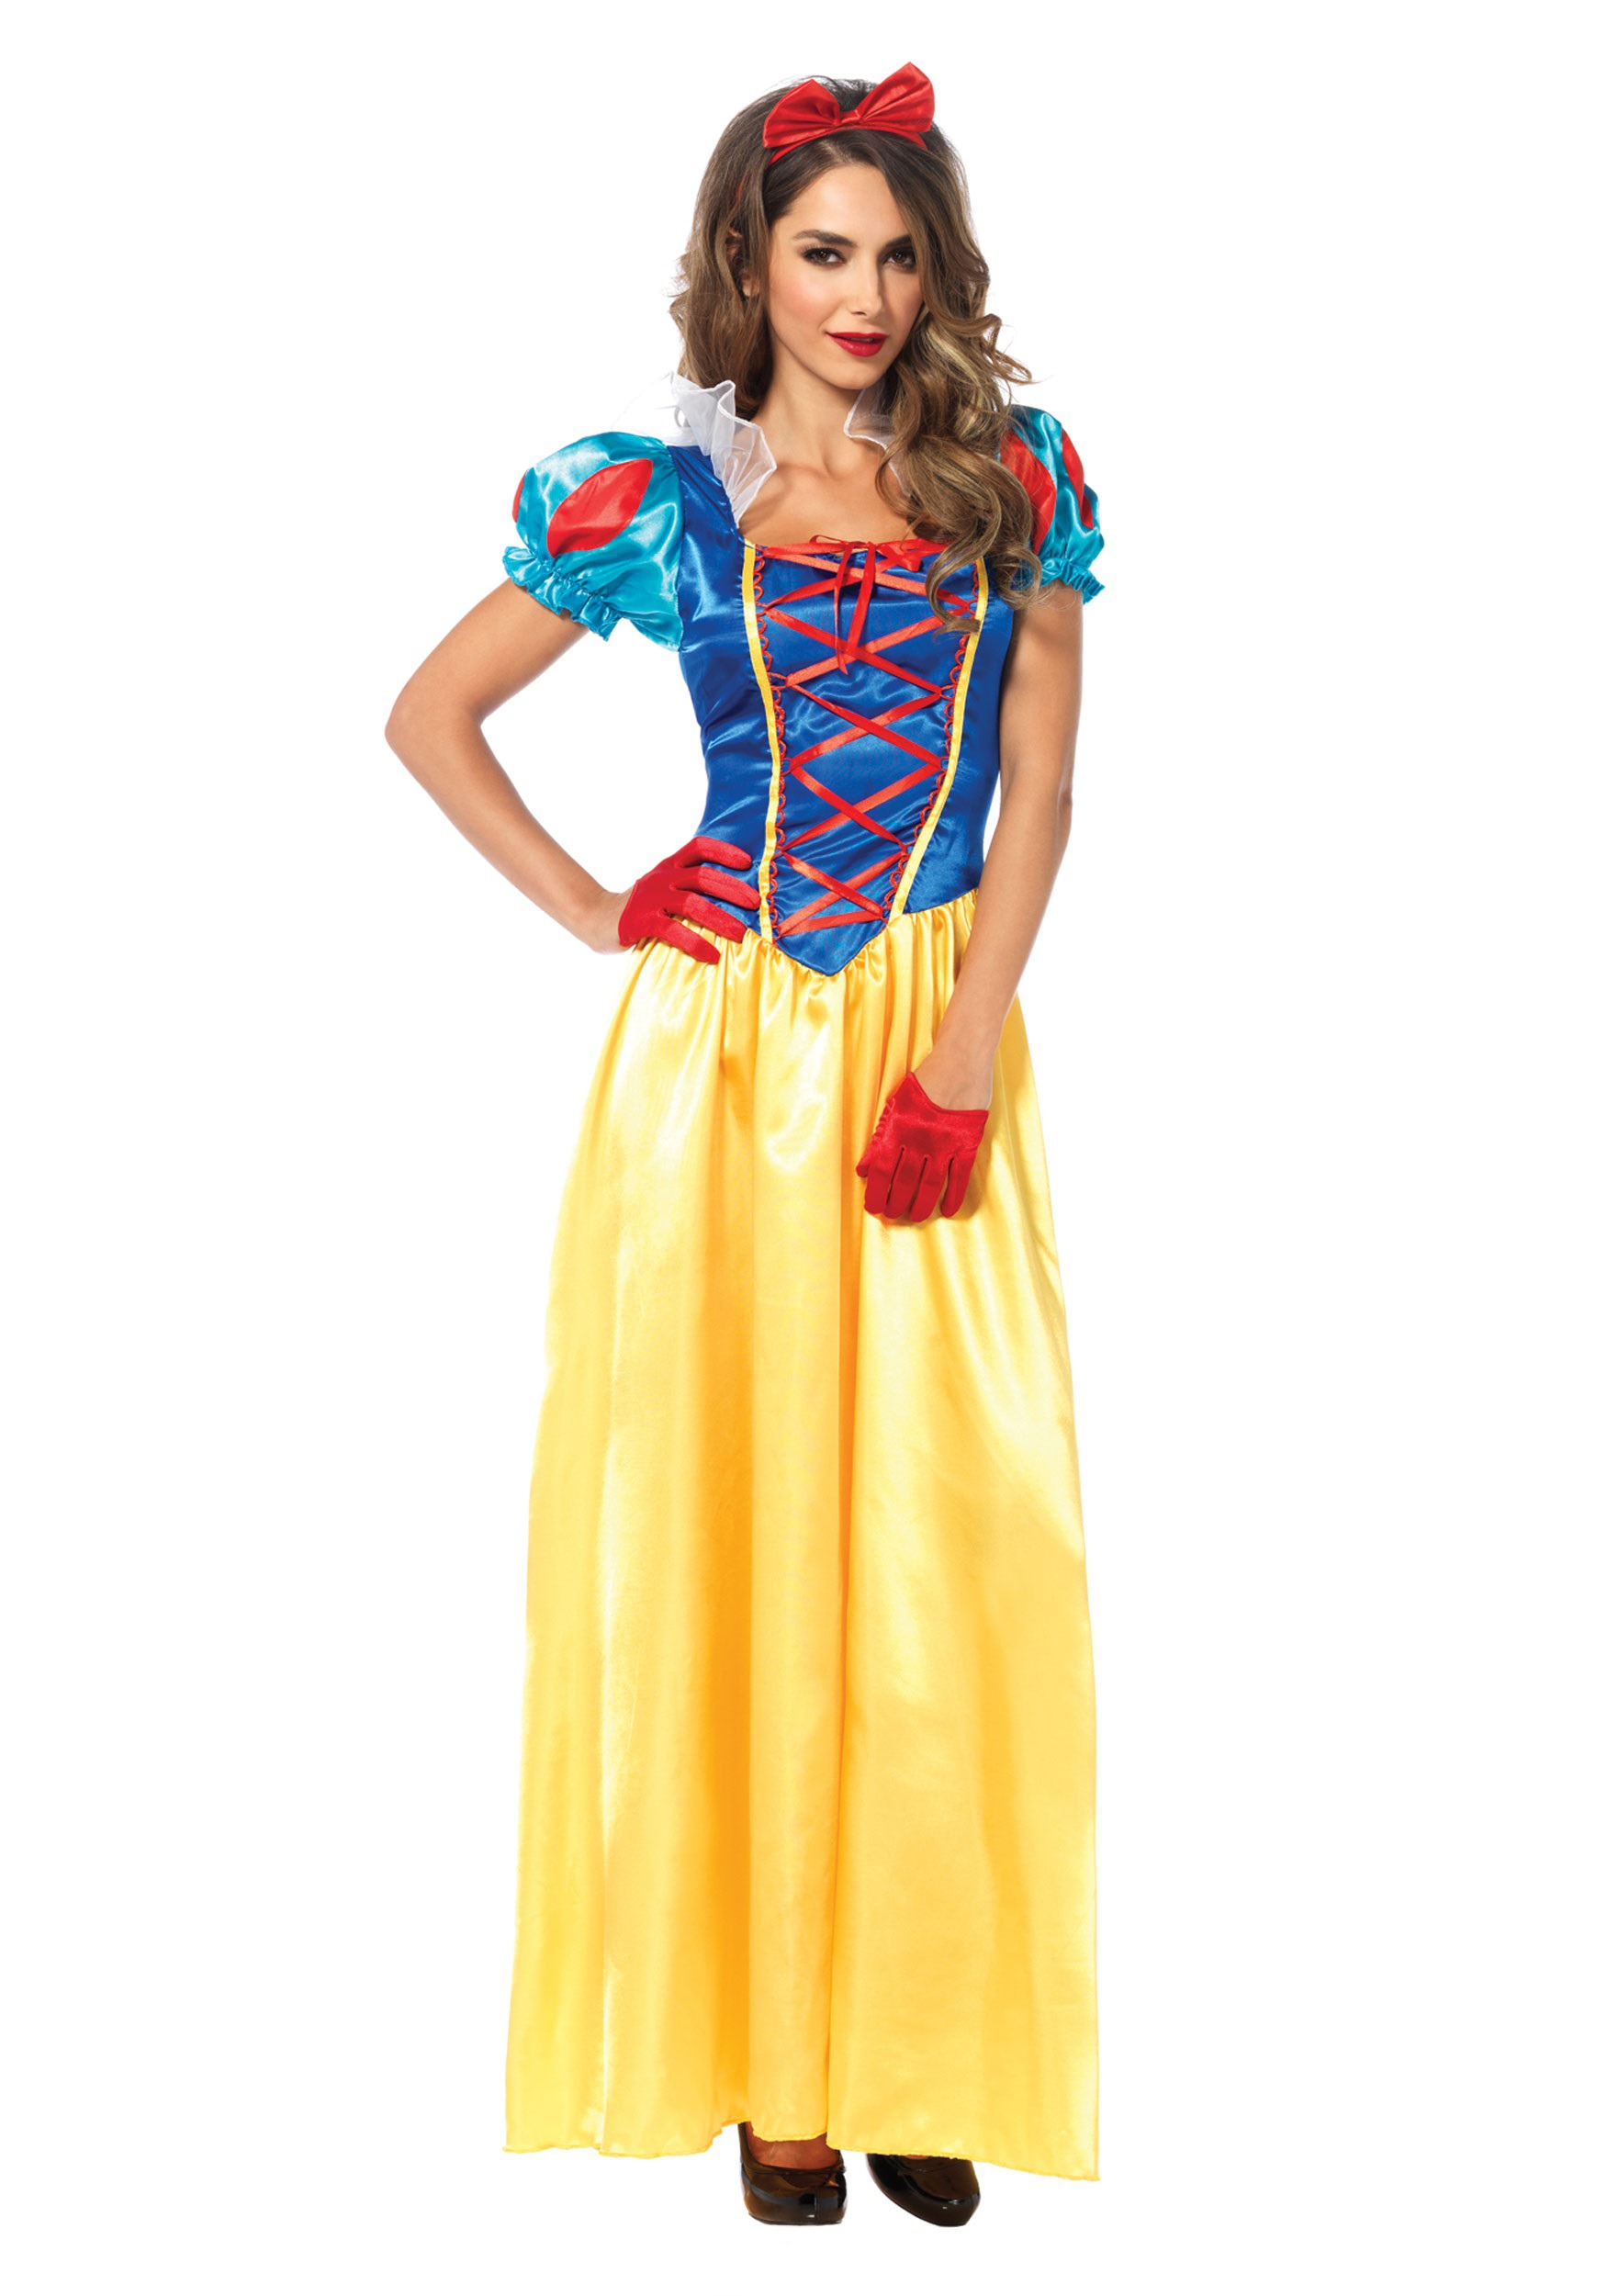 Snow White Costumes - HalloweenCostumes.com